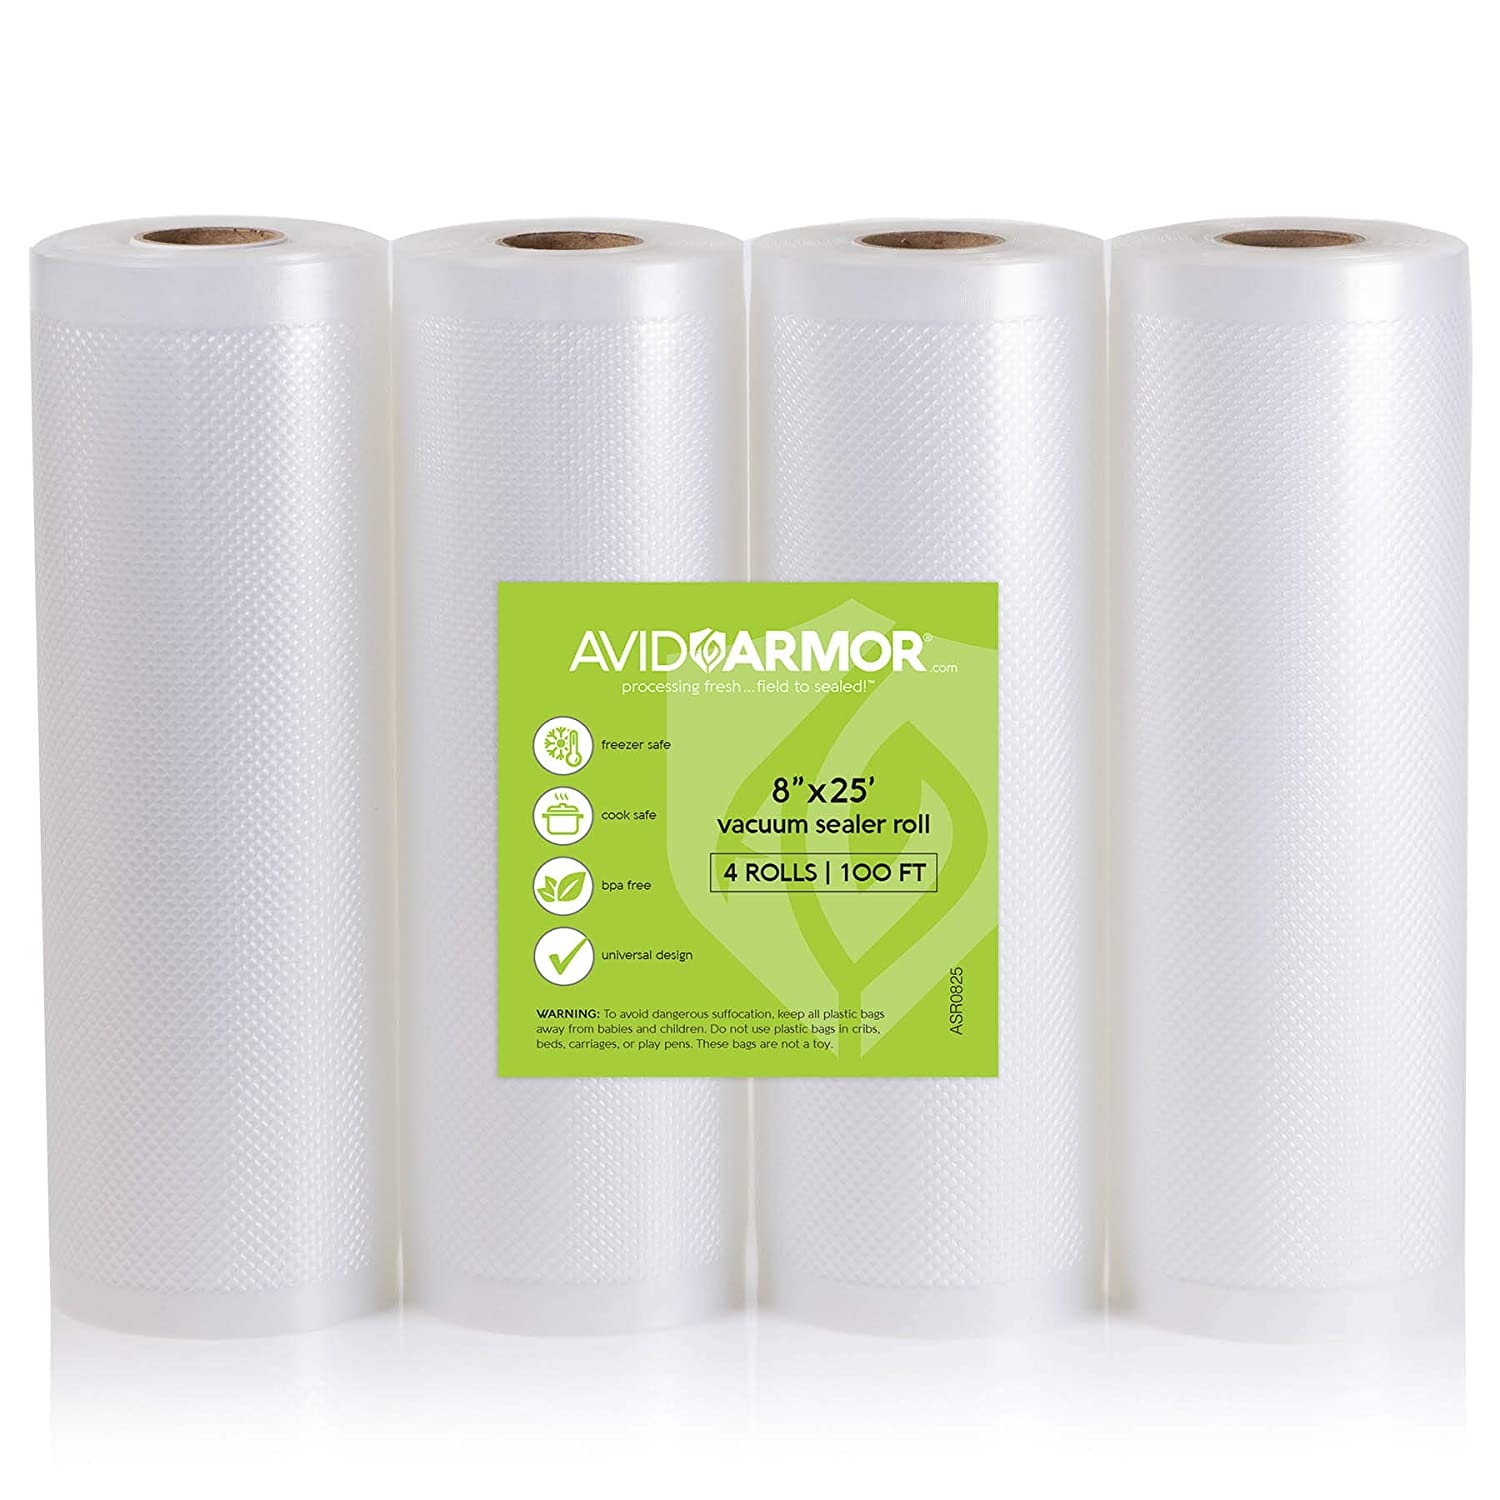 "8"" x 25' Vacuum Sealer Bags Rolls 4 Roll Pack for Food Saver, Seal a Meal Vac Sealers, Heavy Duty Commercial, Sous Vide, BPA Free FITS INSIDE ROLL STORAGE Cut Bag to Size 100 Total Feet Avid Armor"